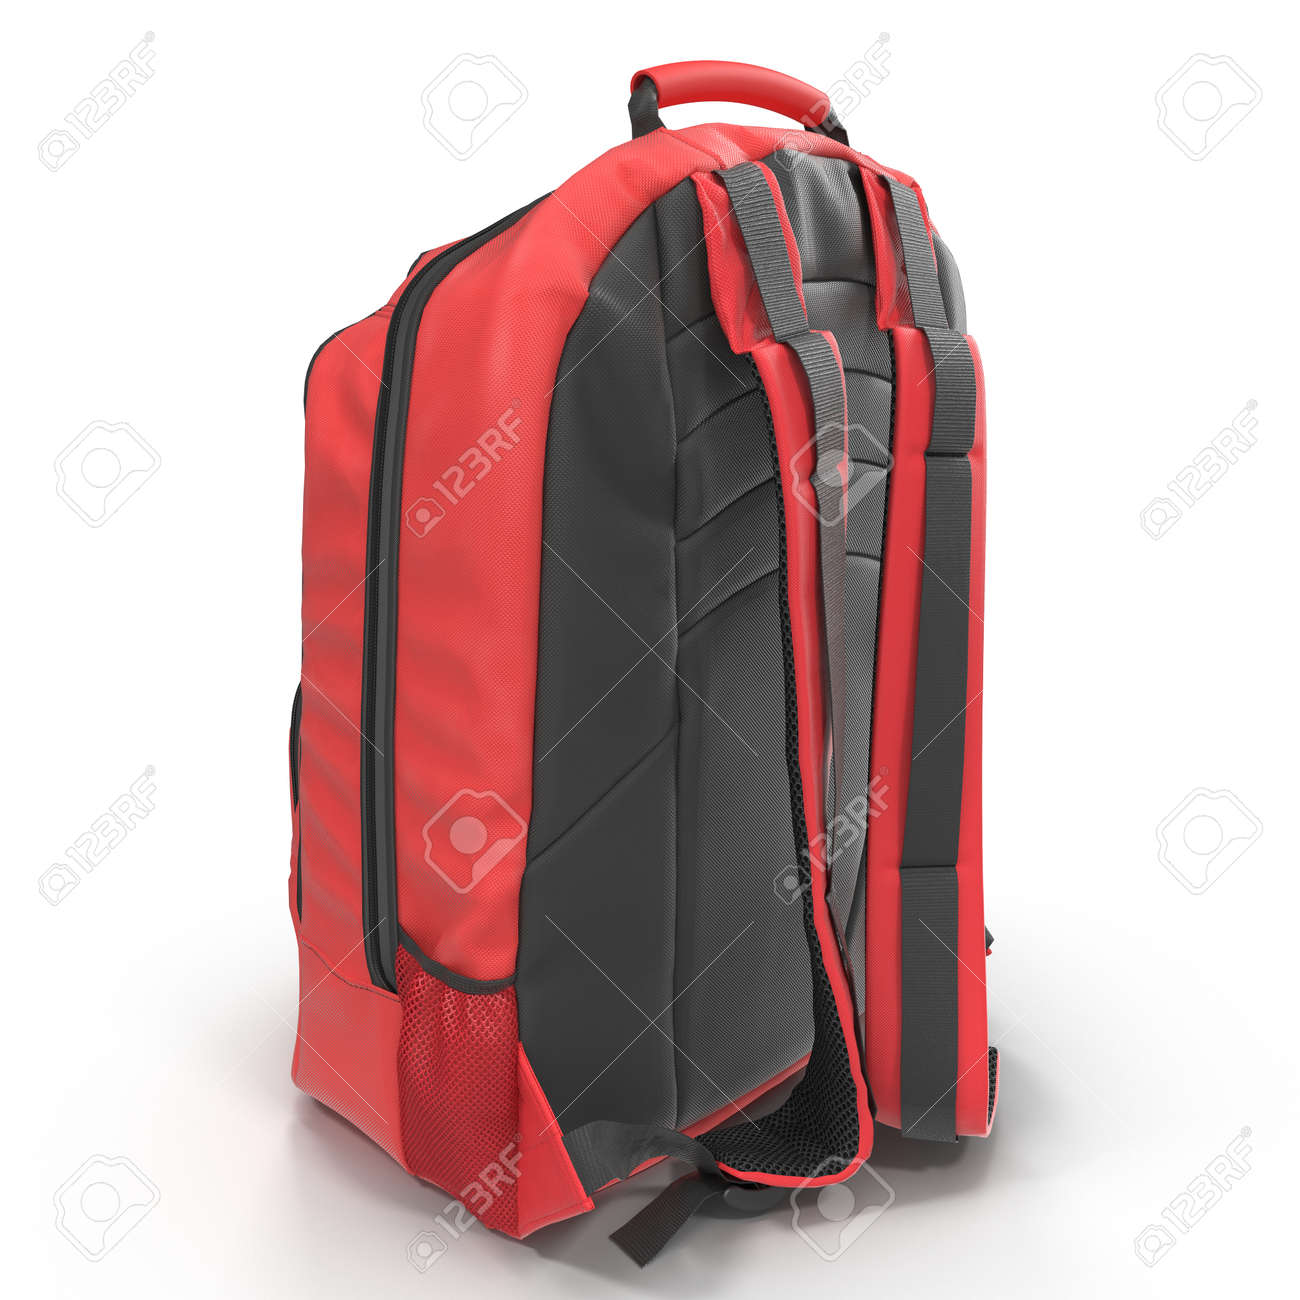 Travel Rucksack Red School Backpack Isolated On White Sport Travel Rucksack Closeup